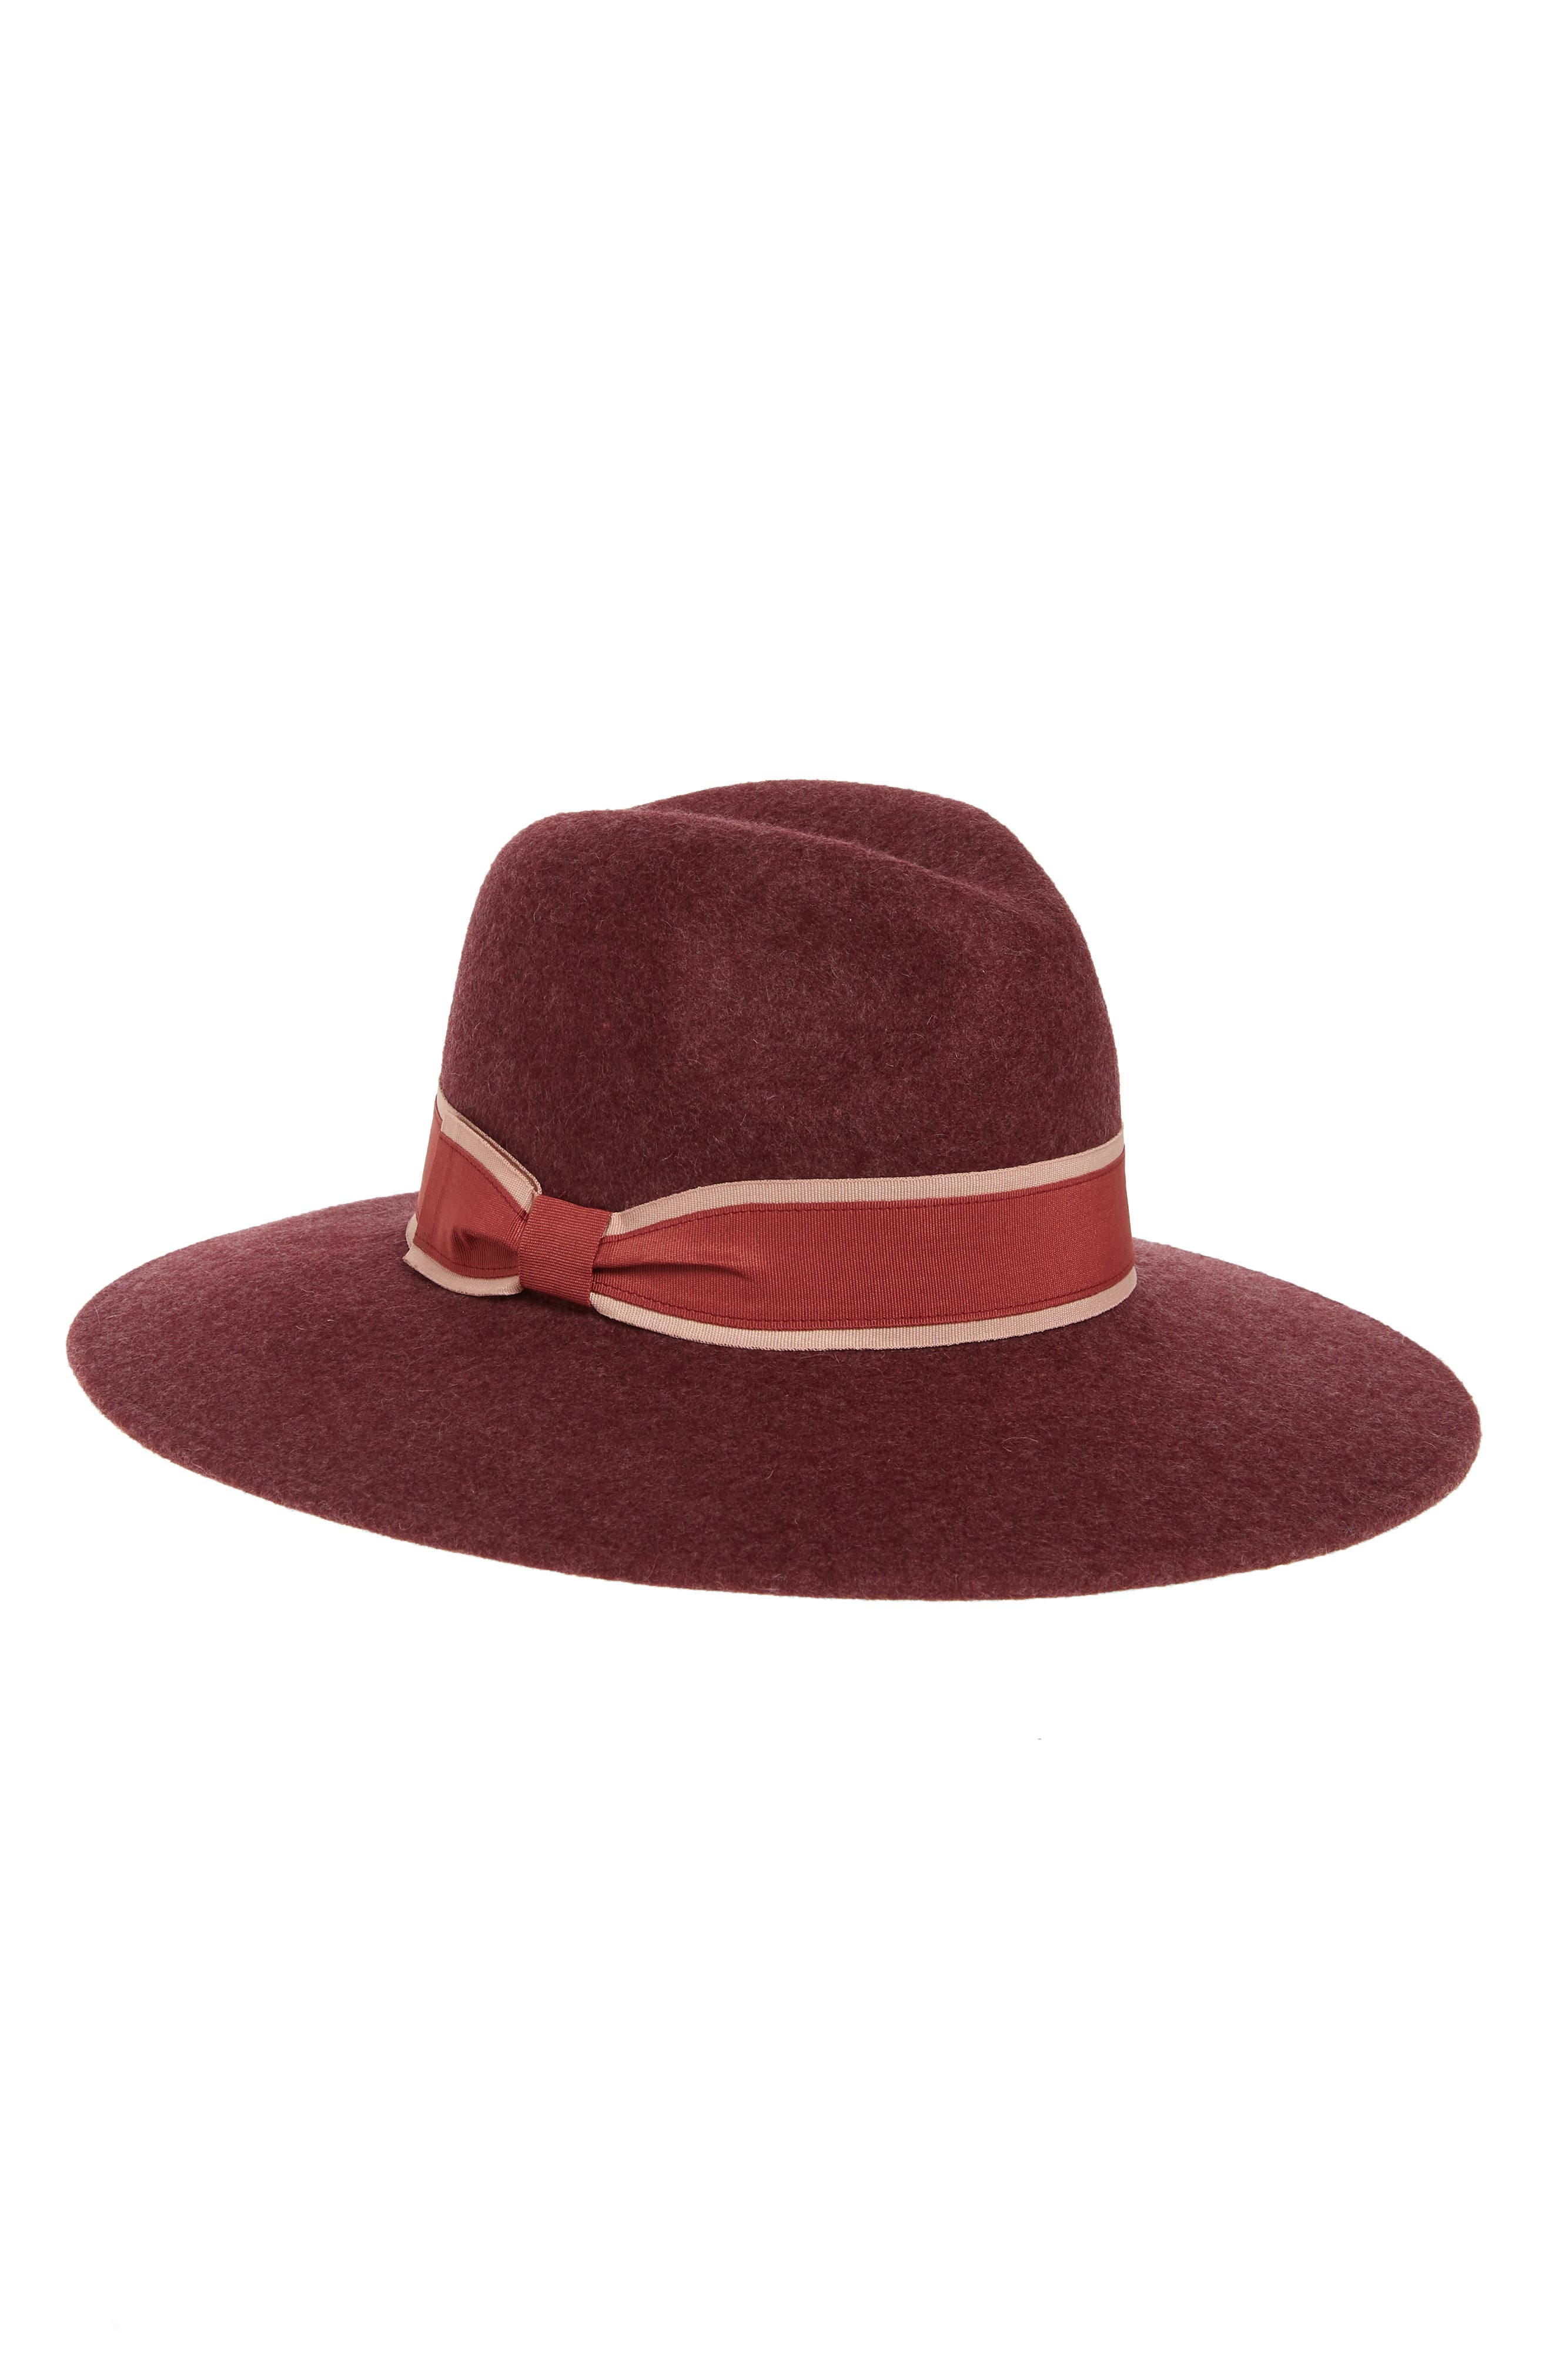 A layered band of polished grosgrain rings the crown of a Panama hat styled with a wide brim and a jaunty flair from soft wool felt. Style Name: Halogen Wool Felt Panama Hat. Style Number: 6018341. Available in stores.